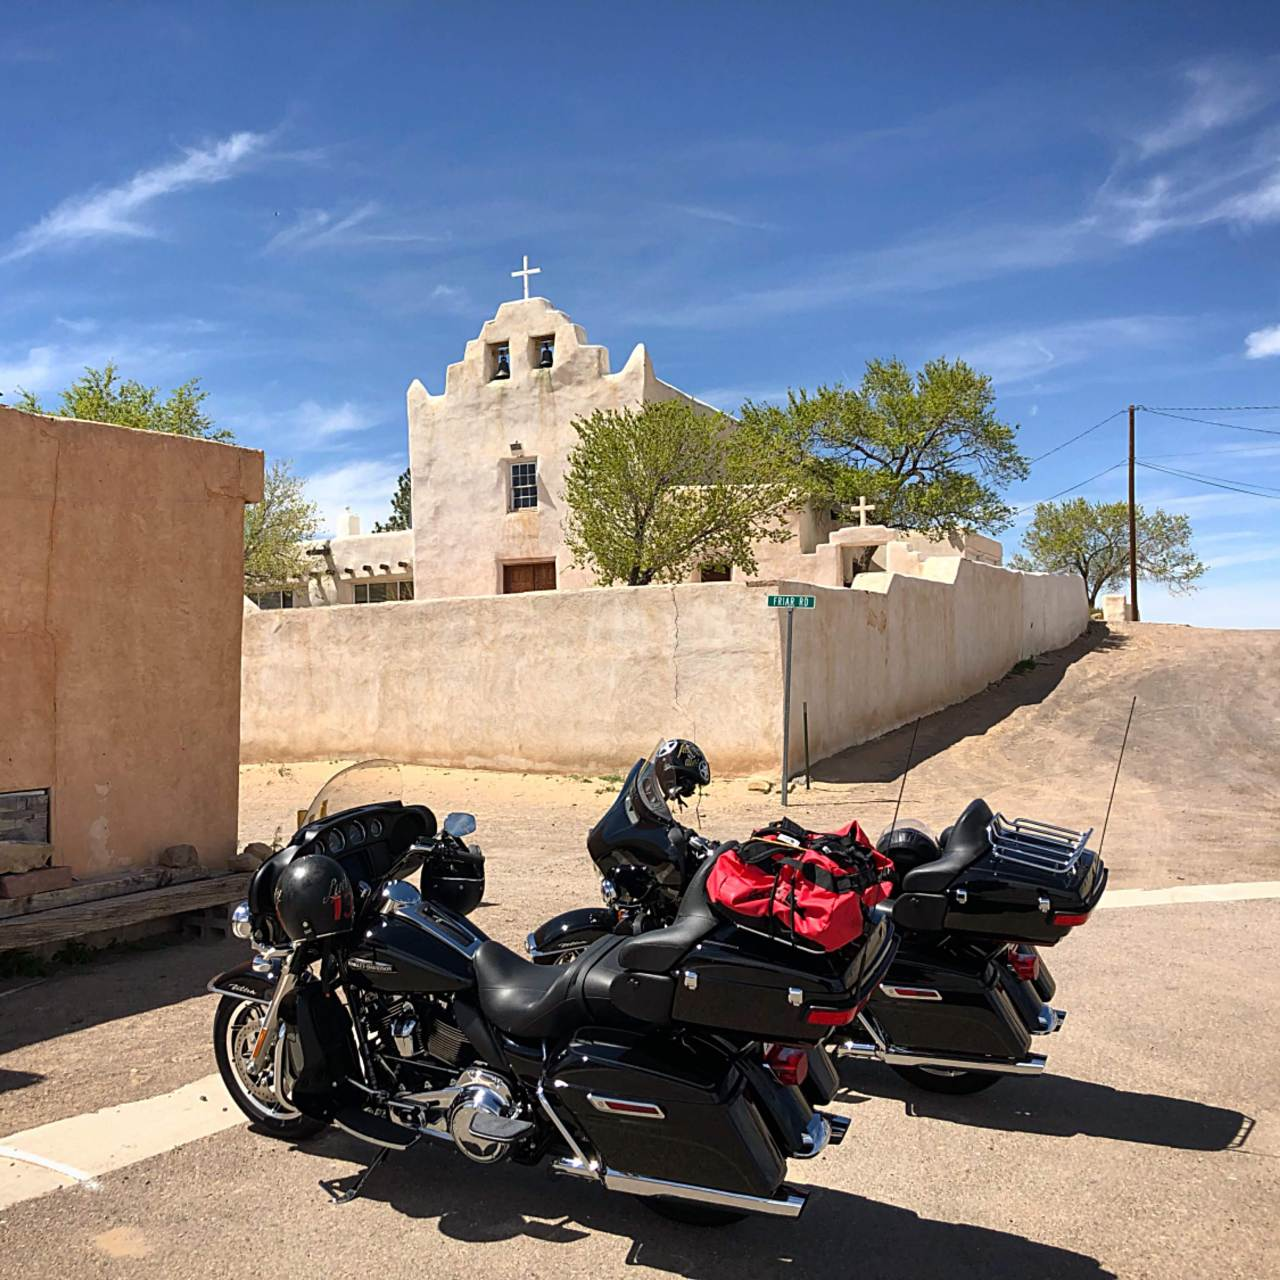 On Harley Davidsons from Albuquerque to Monument Valley via Route 66 and Canyon de Chelly